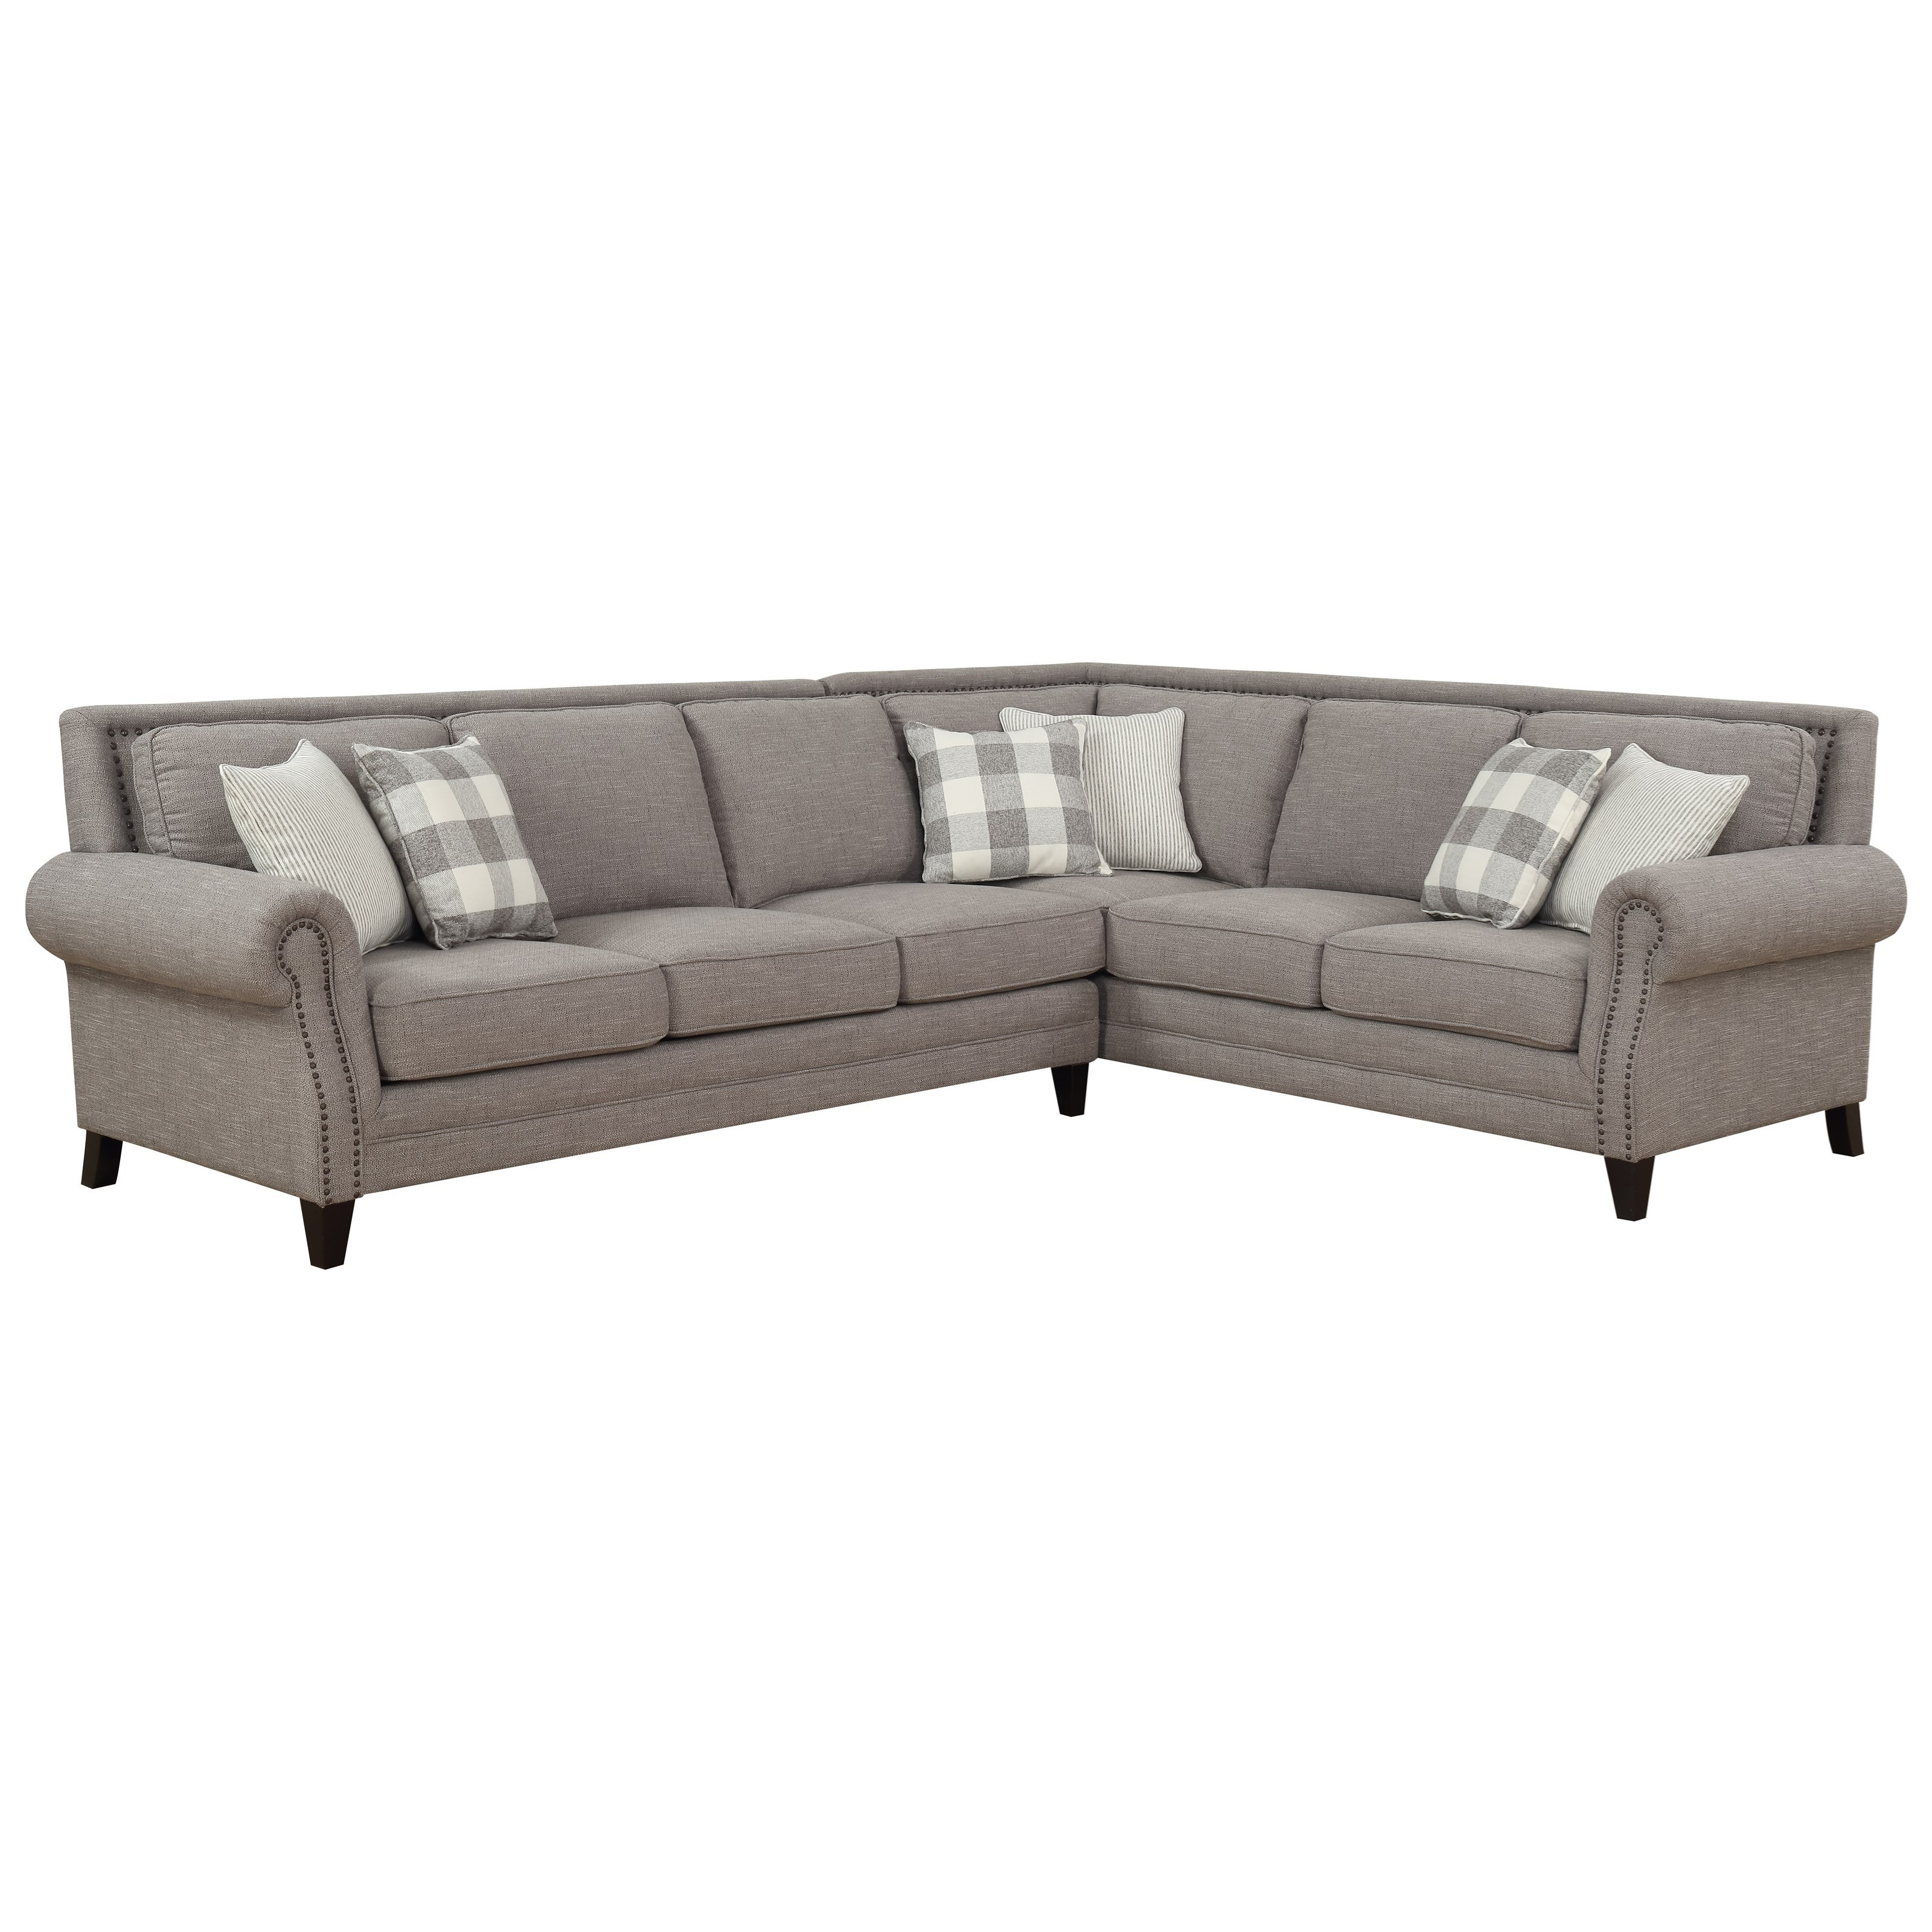 Willow Creek 2-Piece Sectional Sofa by Emerald at Northeast Factory Direct